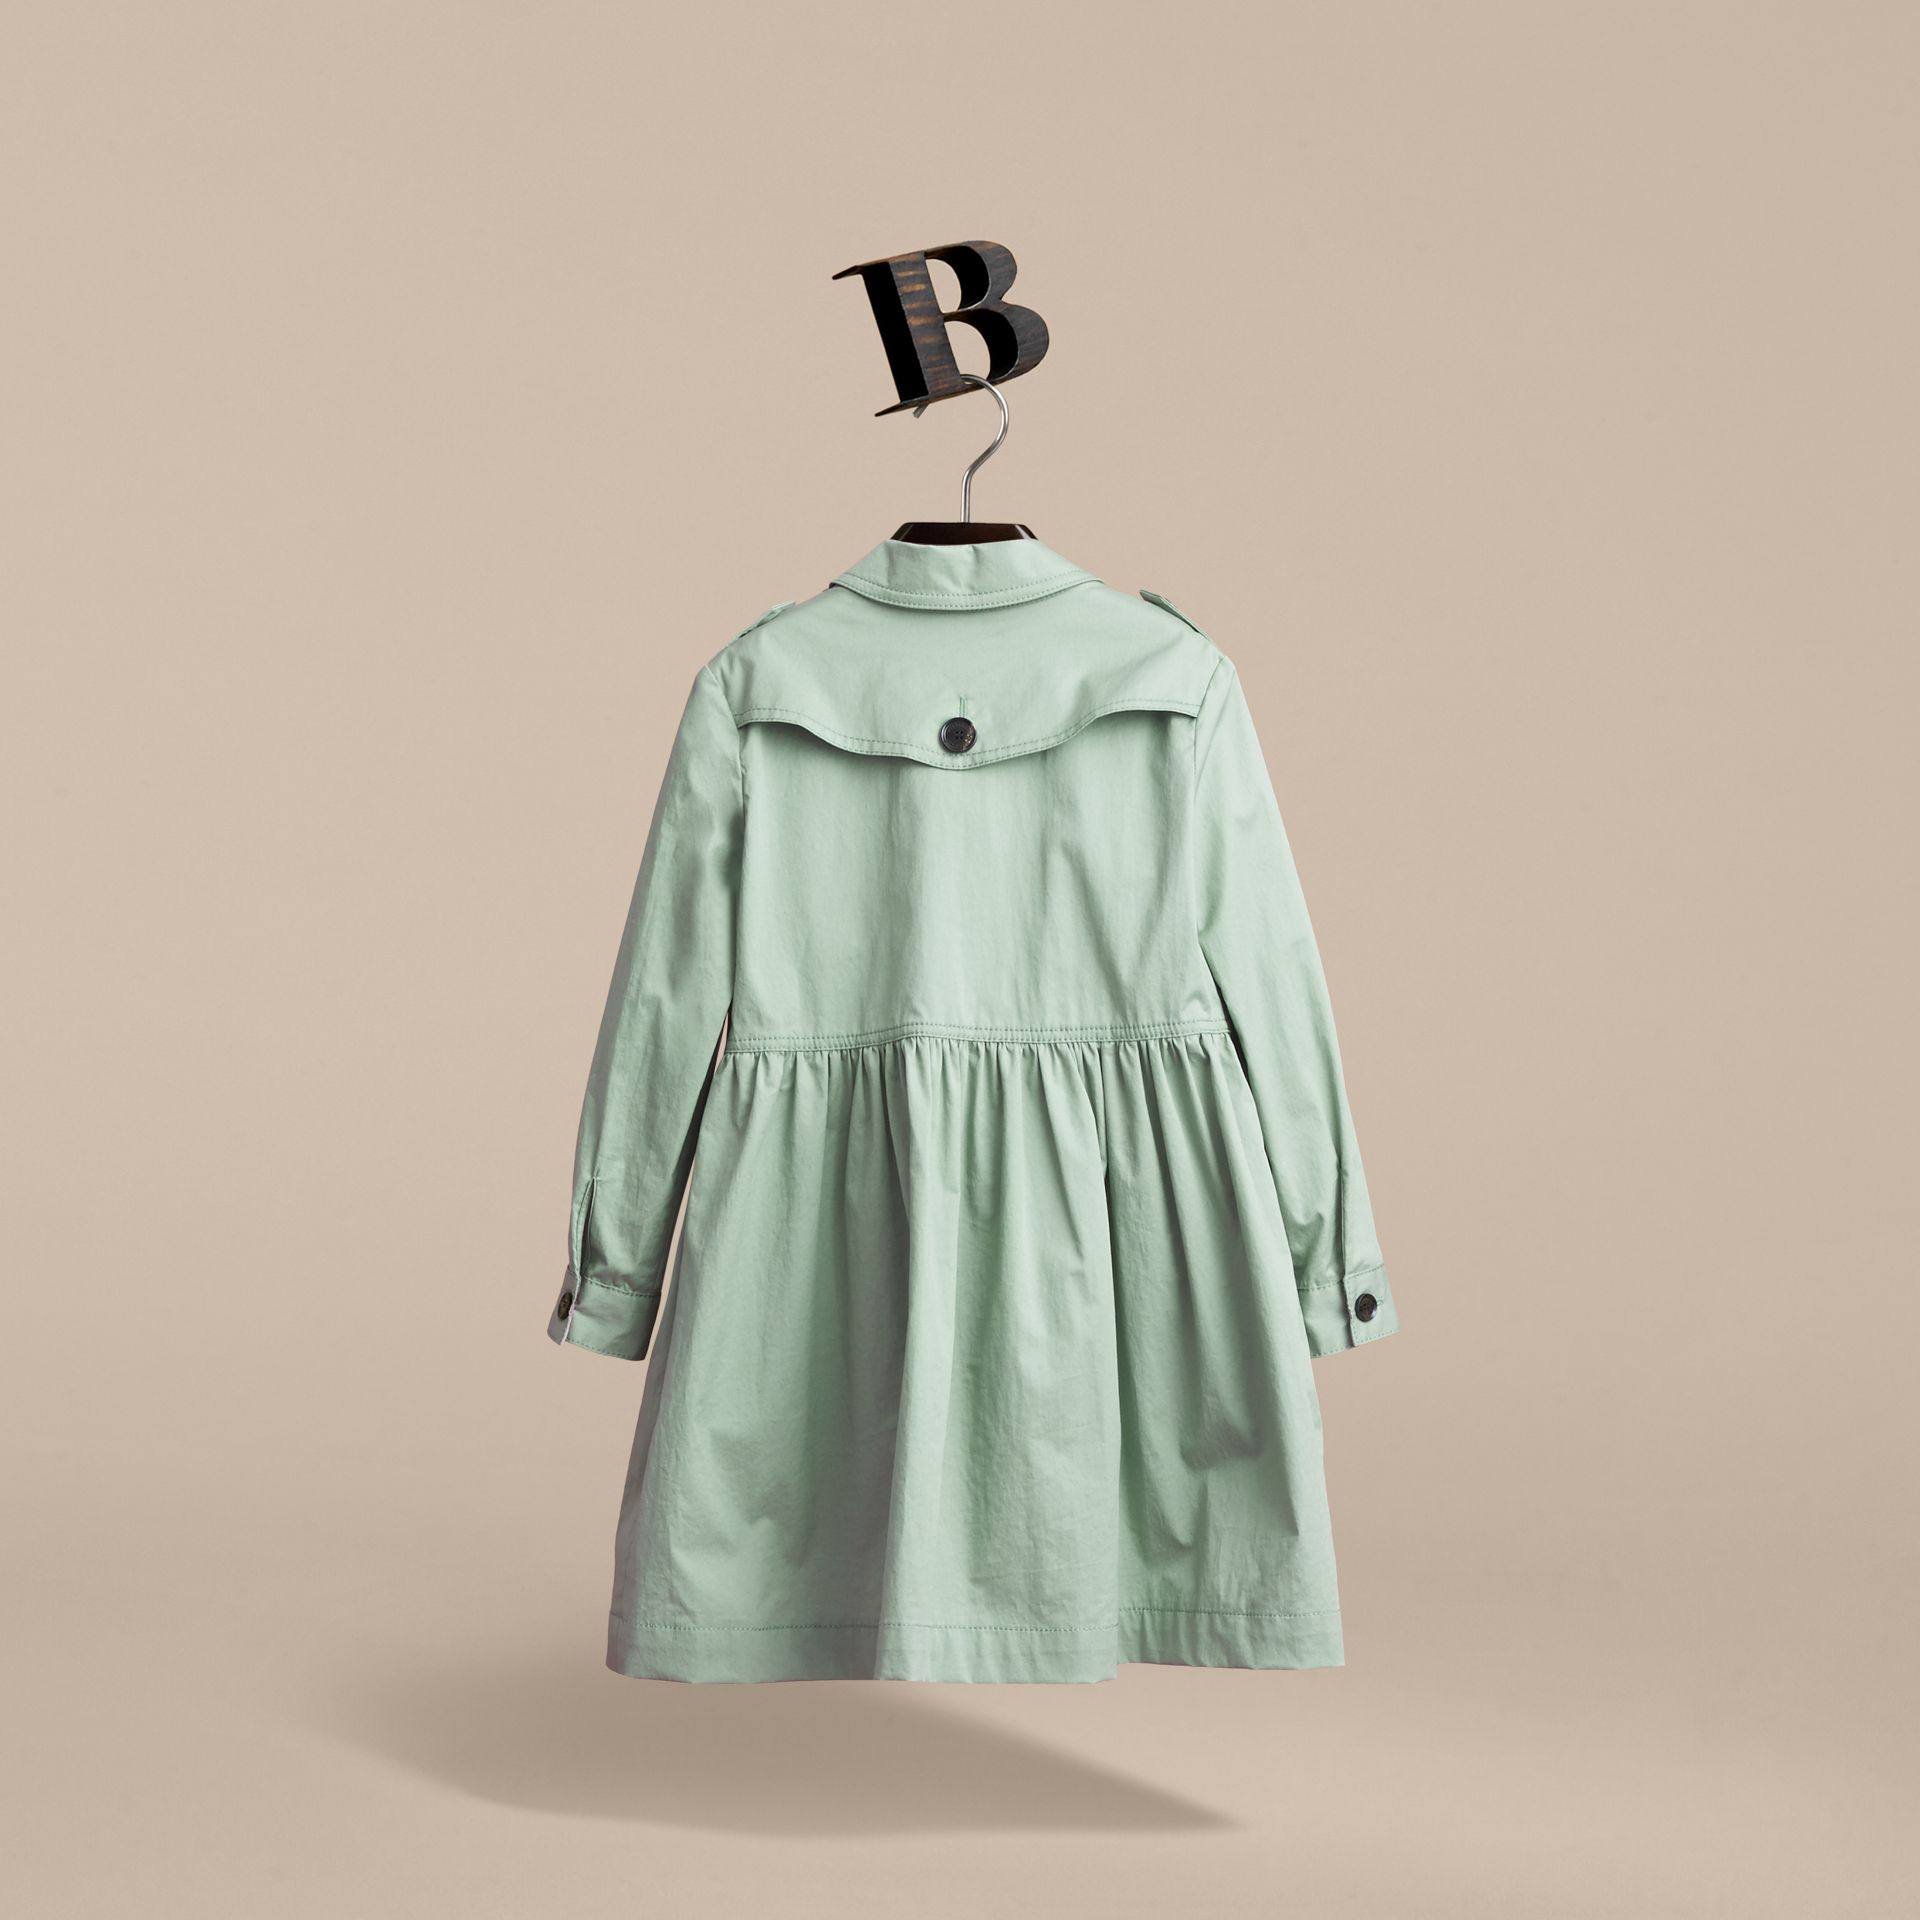 Robe trench en coton extensible avec éléments check (Vert Céladon) - Fille | Burberry - photo de la galerie 4